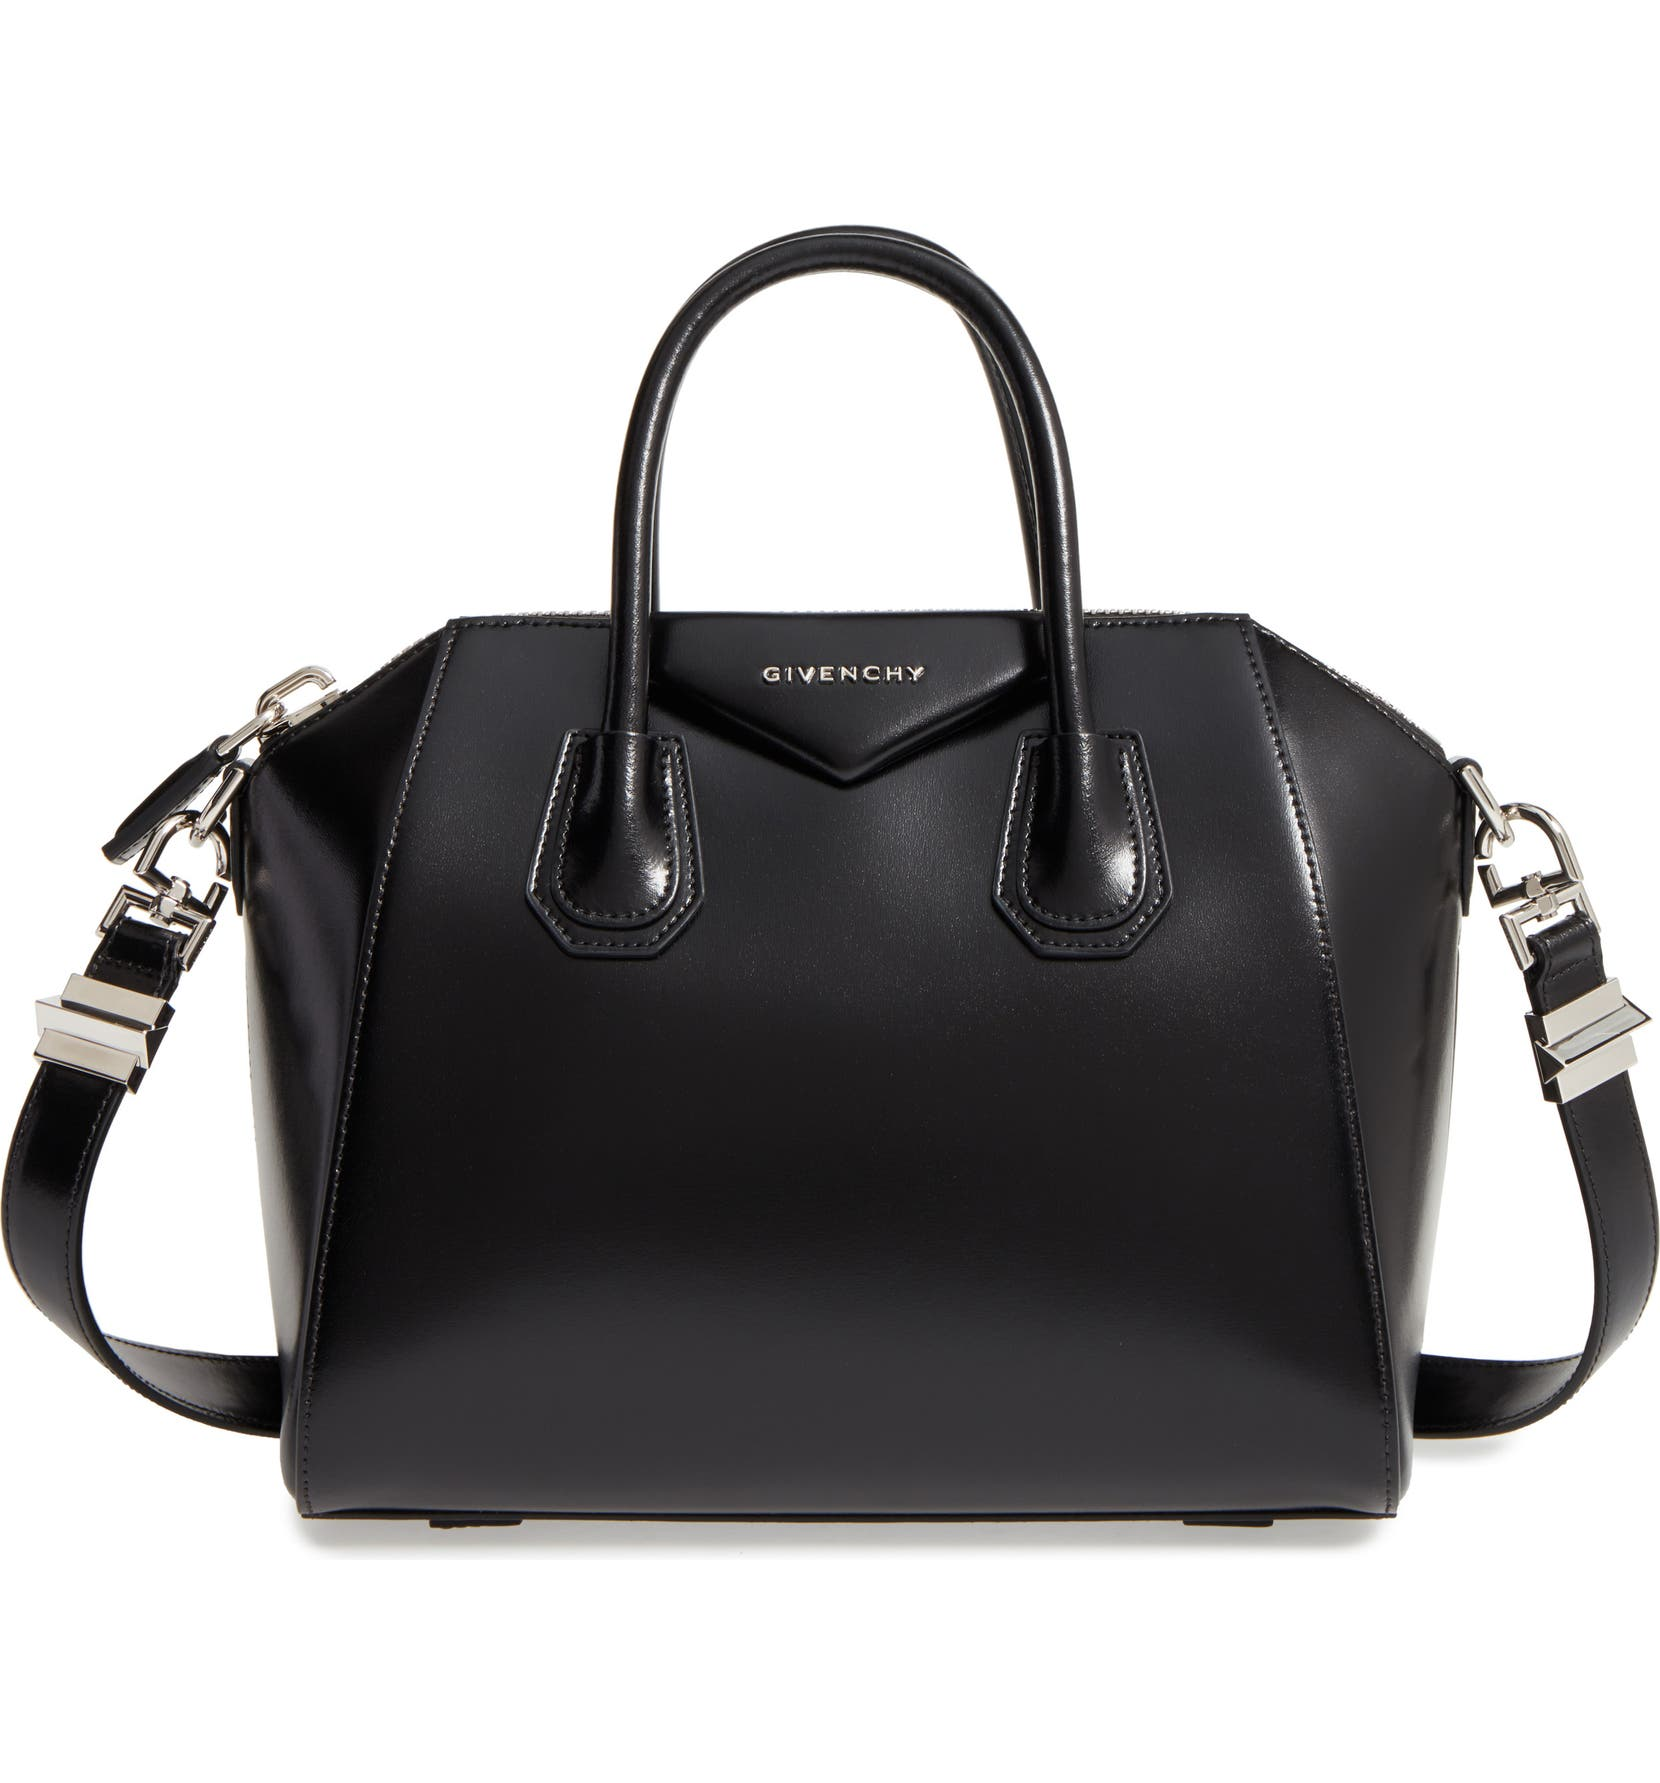 903d990571f1 Givenchy Small Antigona Box Leather Satchel